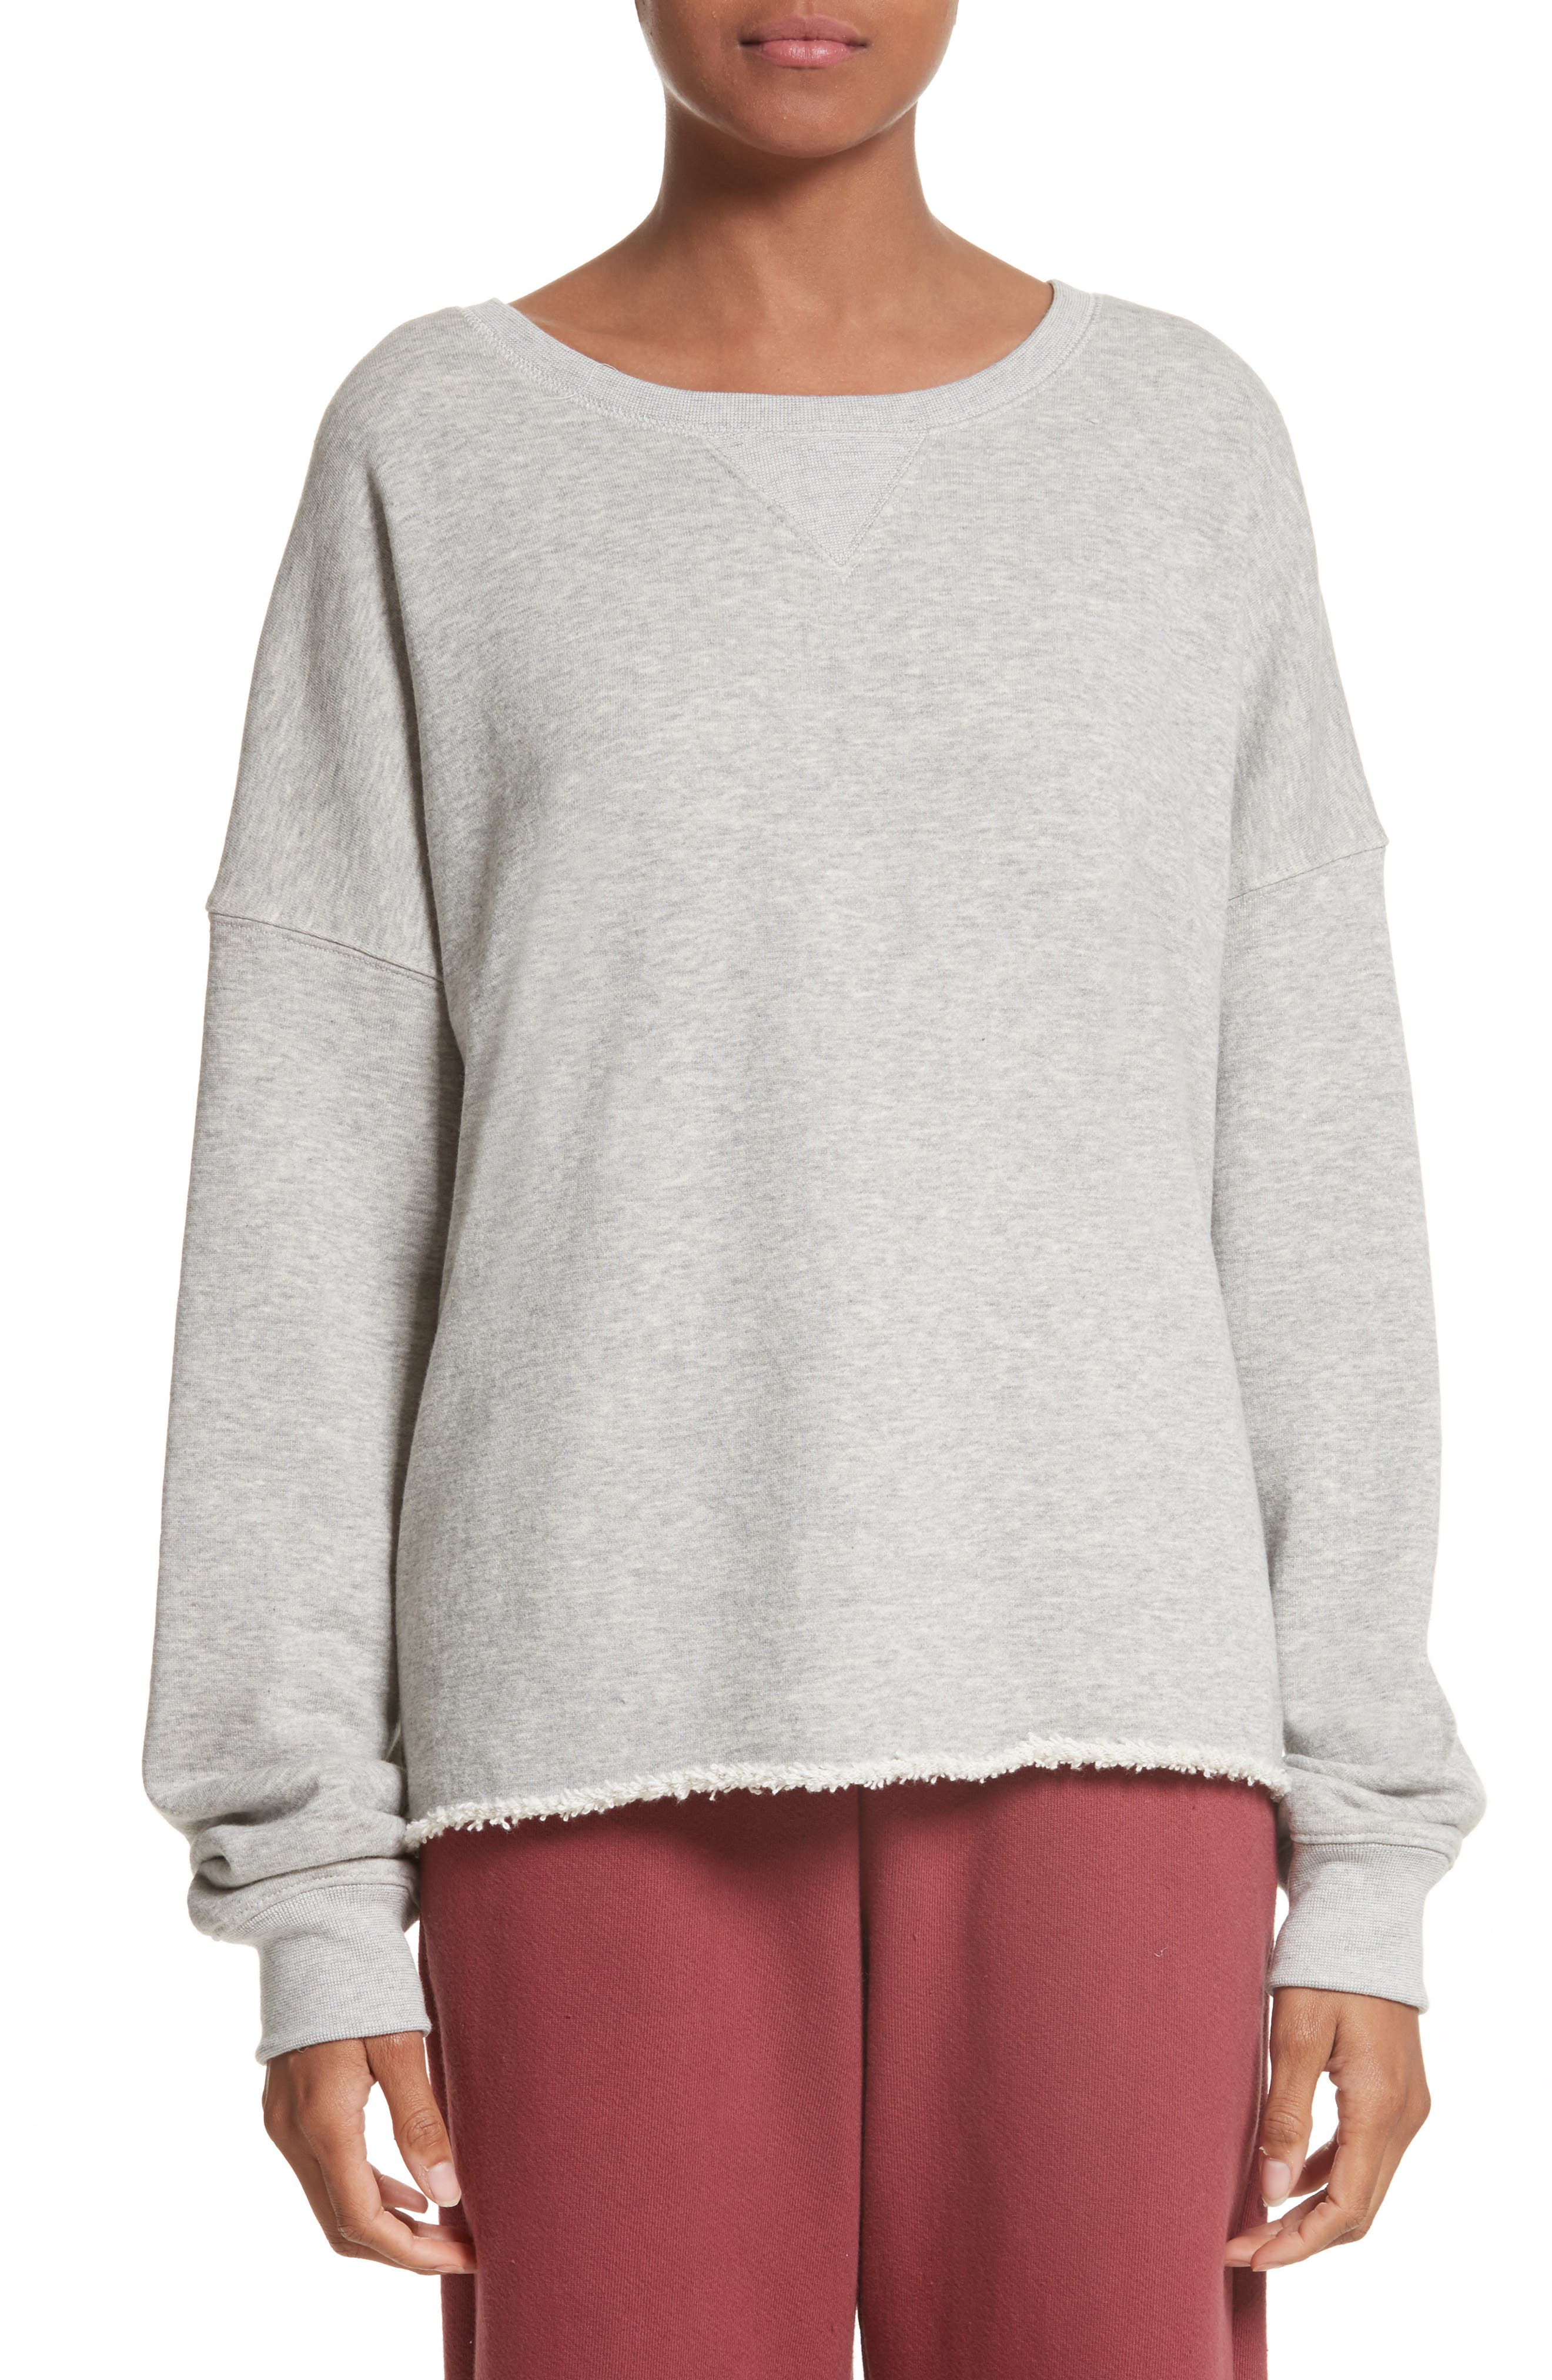 Brushed Terry Sweatshirt,                         Main,                         color, 020